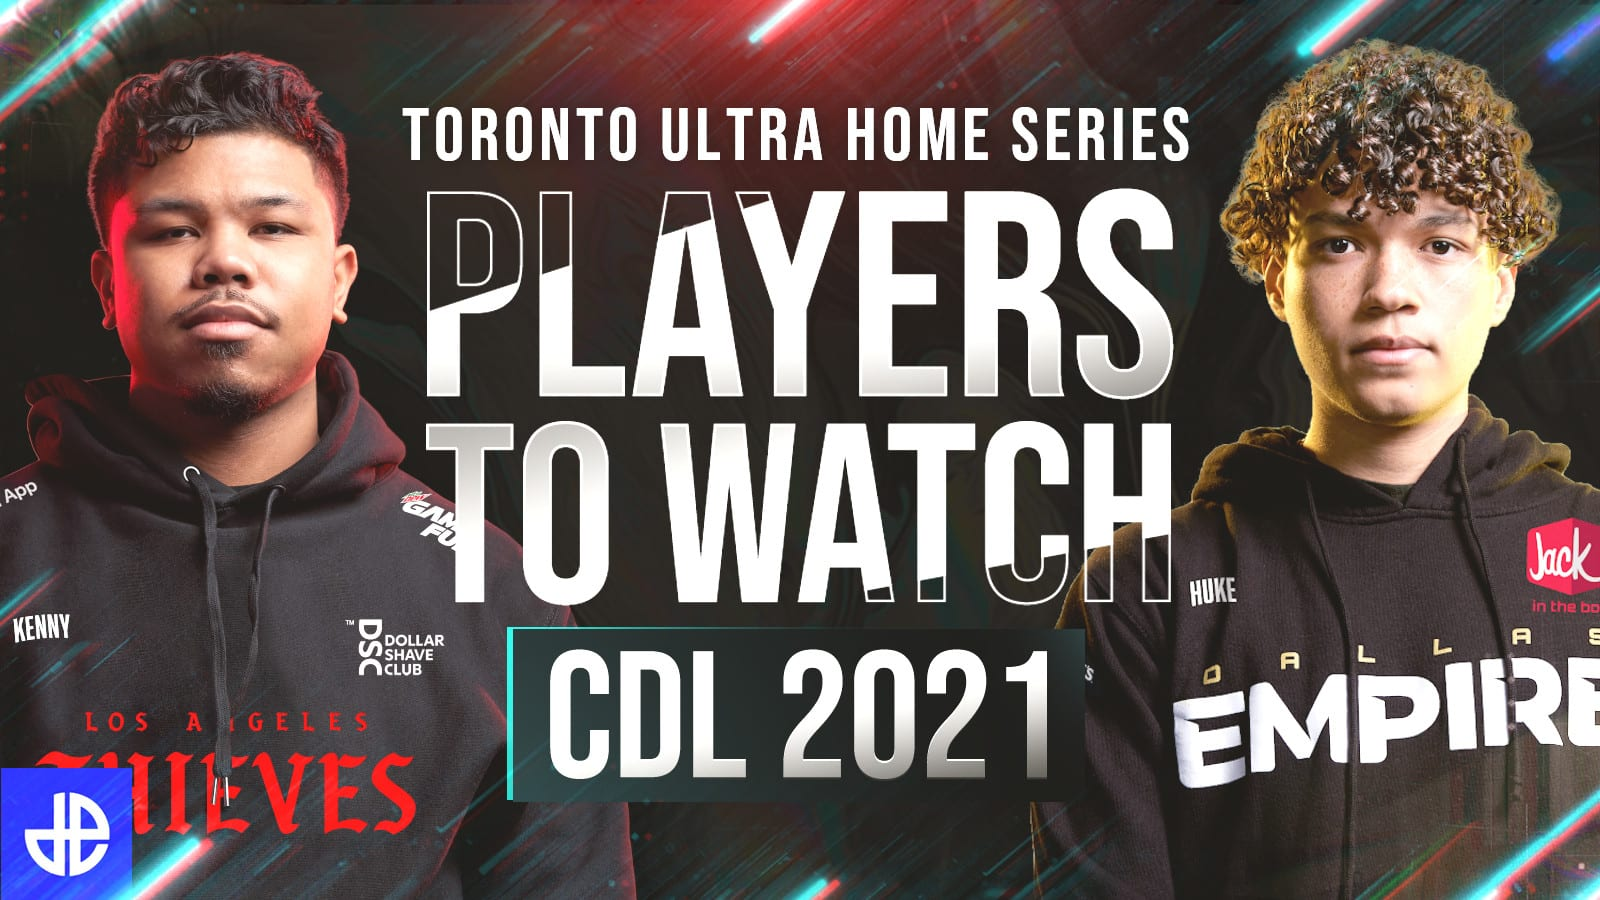 cdl 2021 players to watch toronto home series header